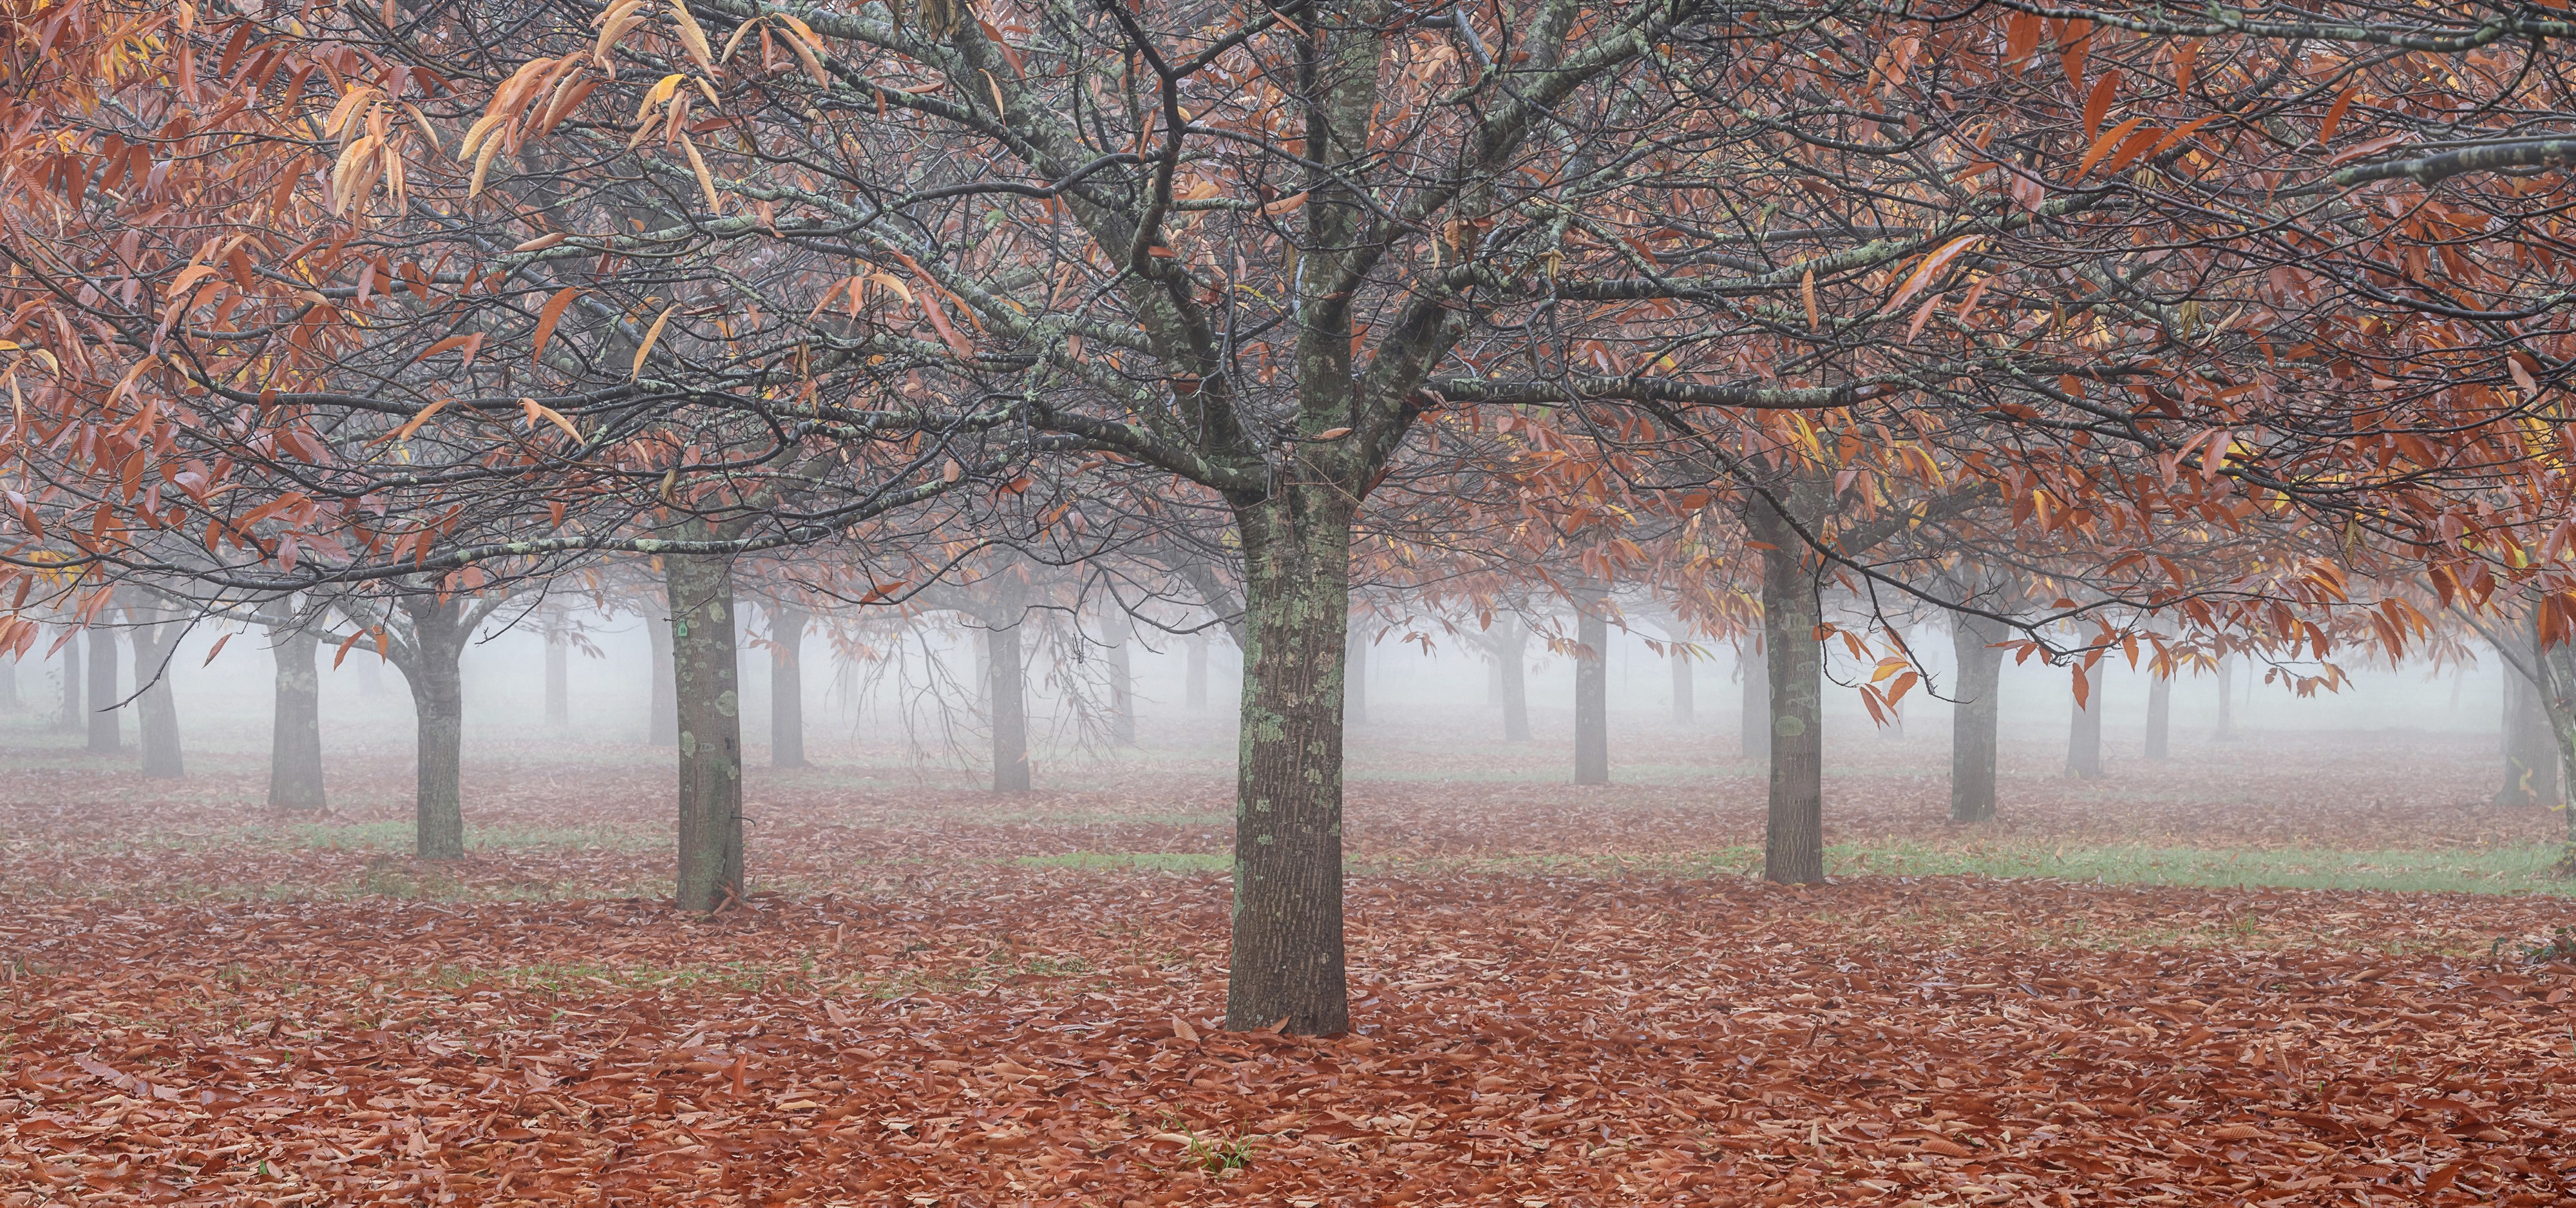 a large tree with outstretched branches is mostly leafless, with a carpet of red and orange leaves covering the ground